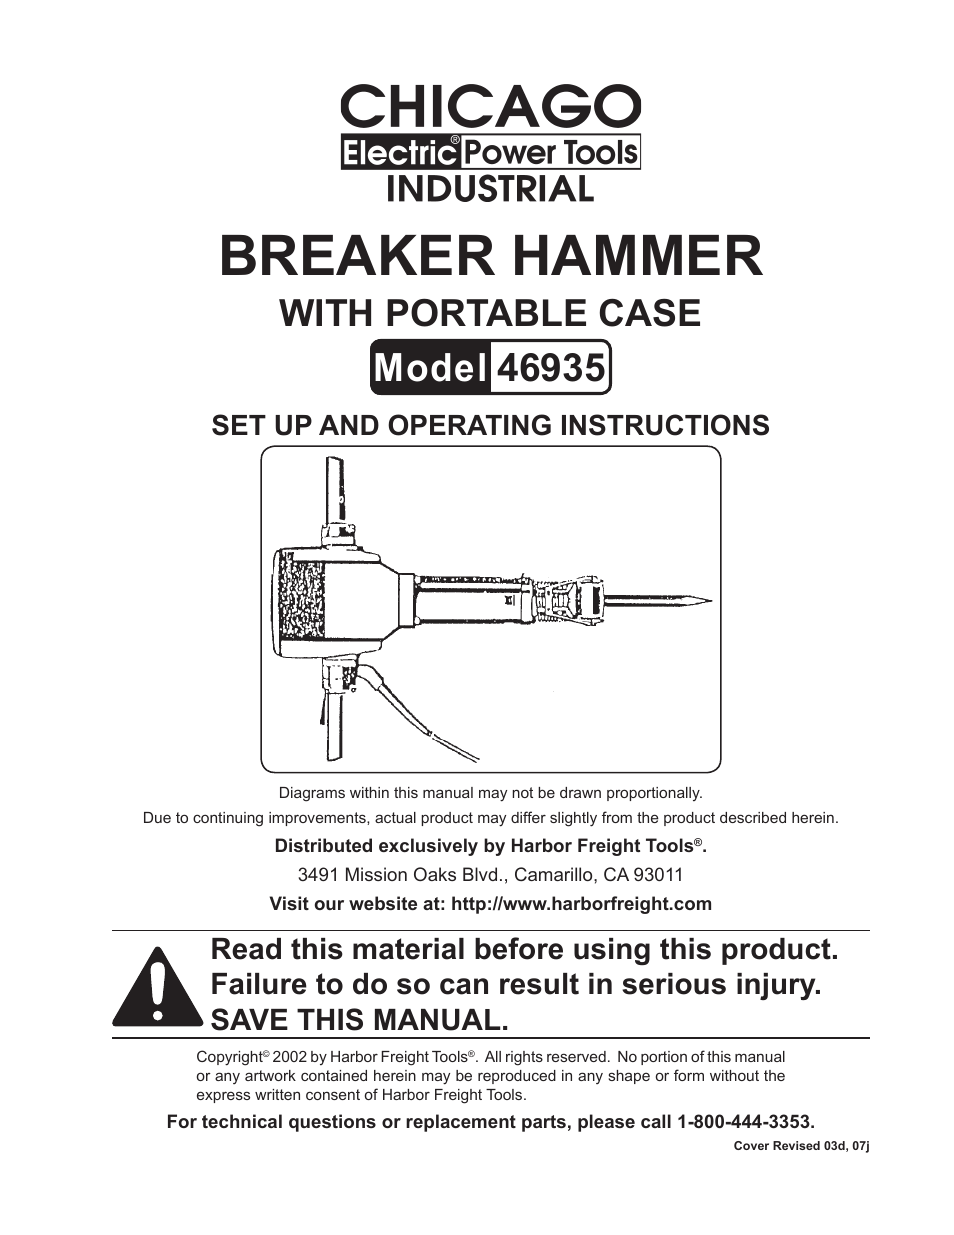 medium resolution of harbor freight tools chicago electric breaker hammer with portable case 46935 user manual 10 pages